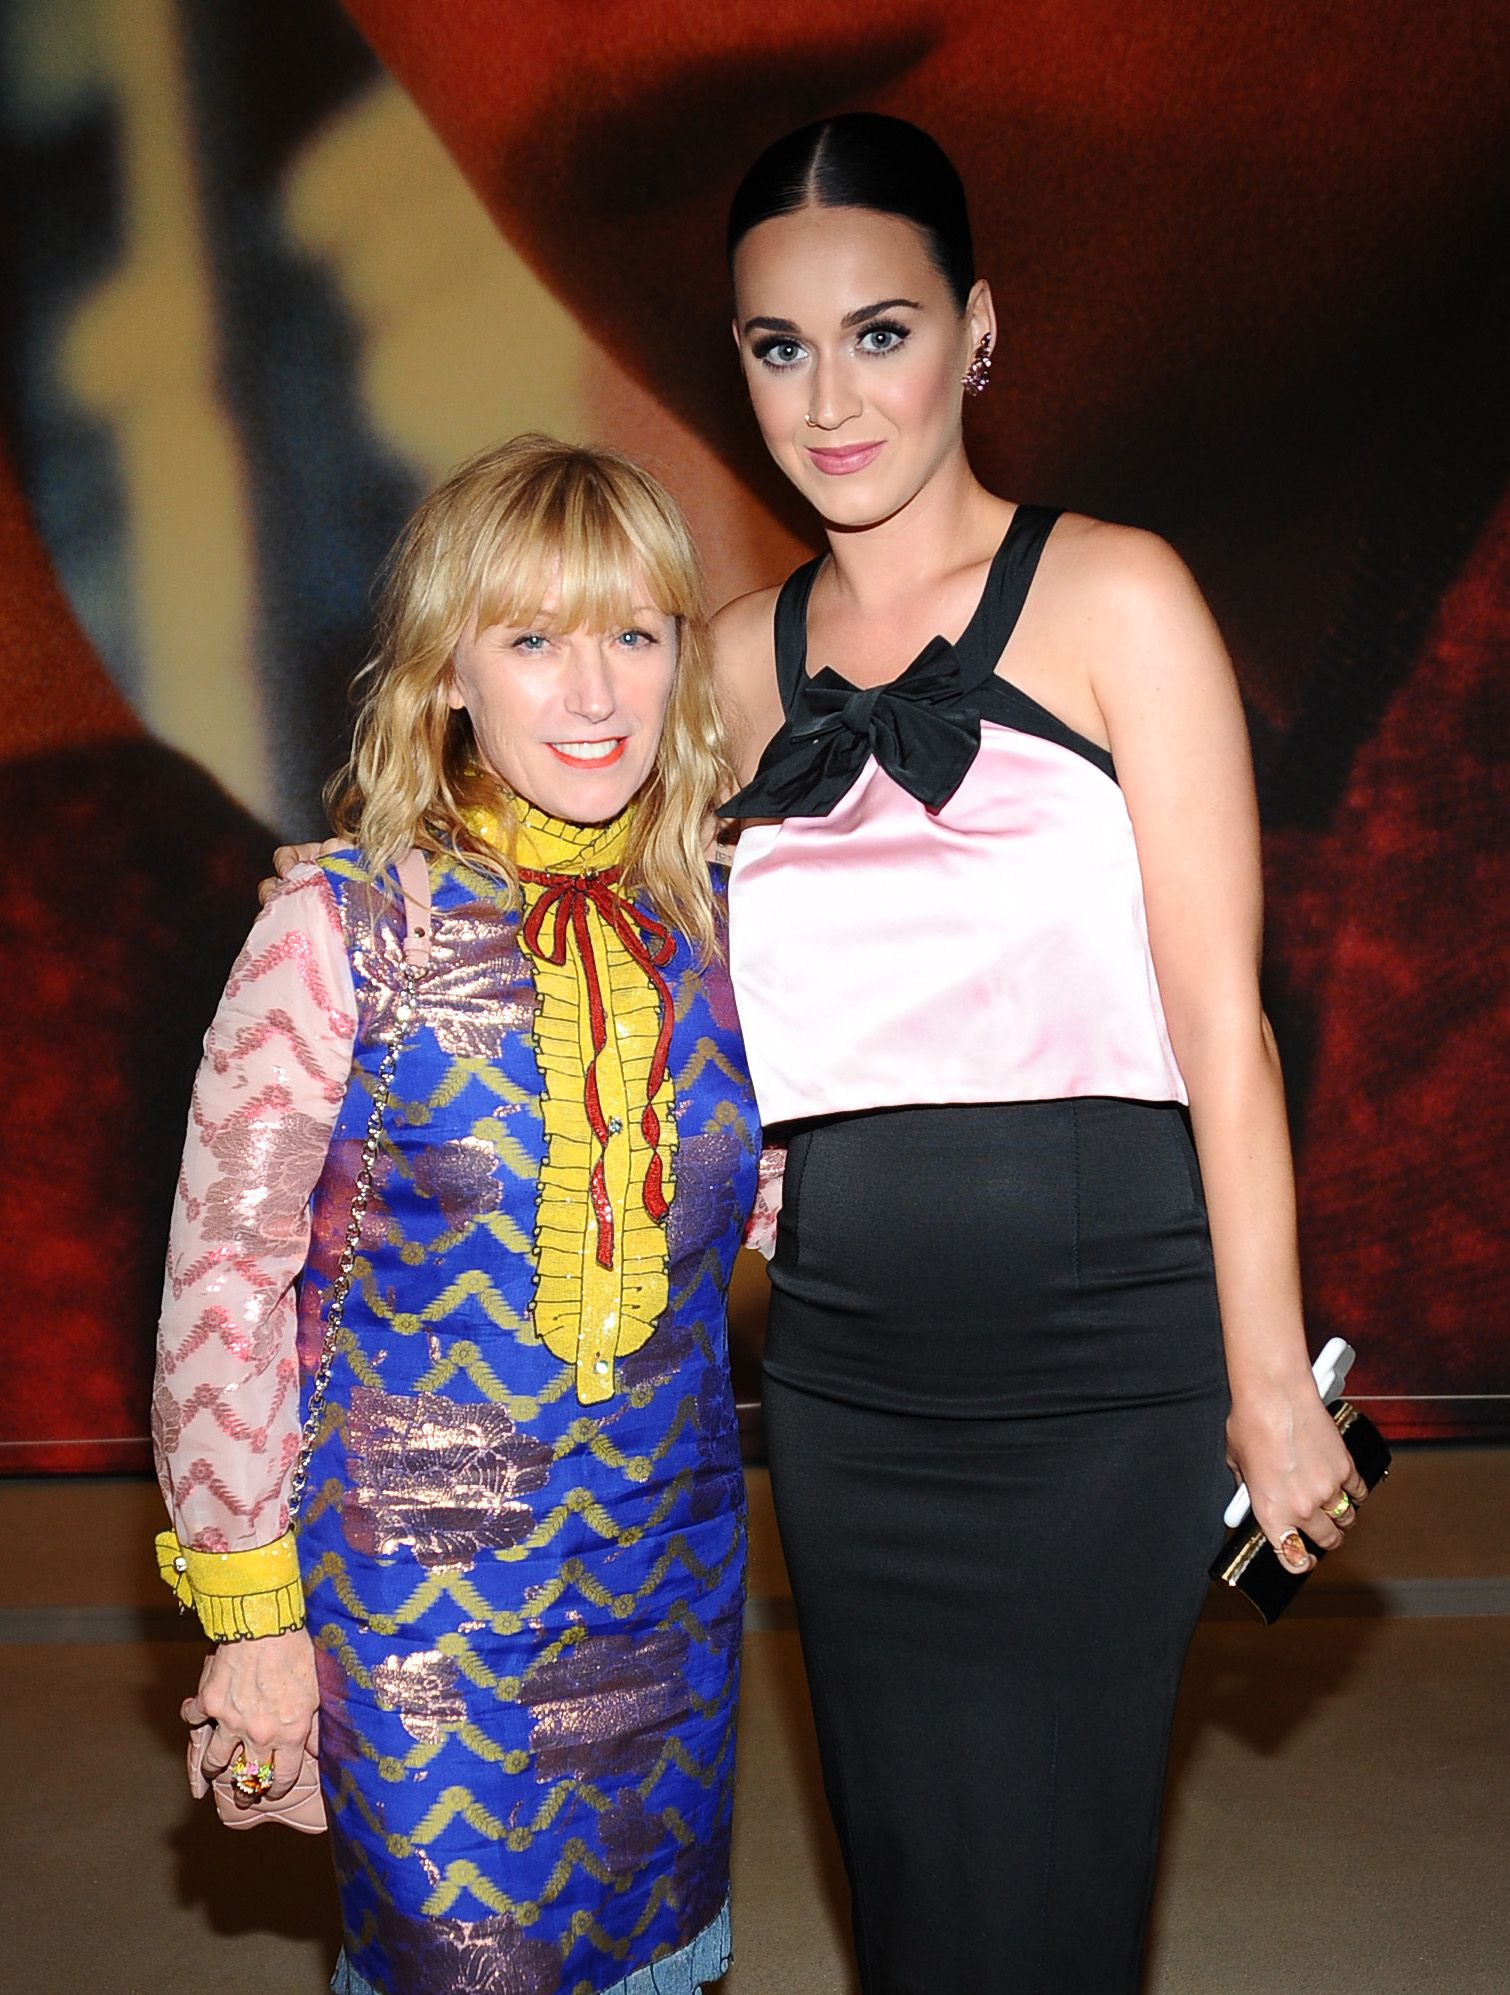 Cindy Sherman and Katy Perry